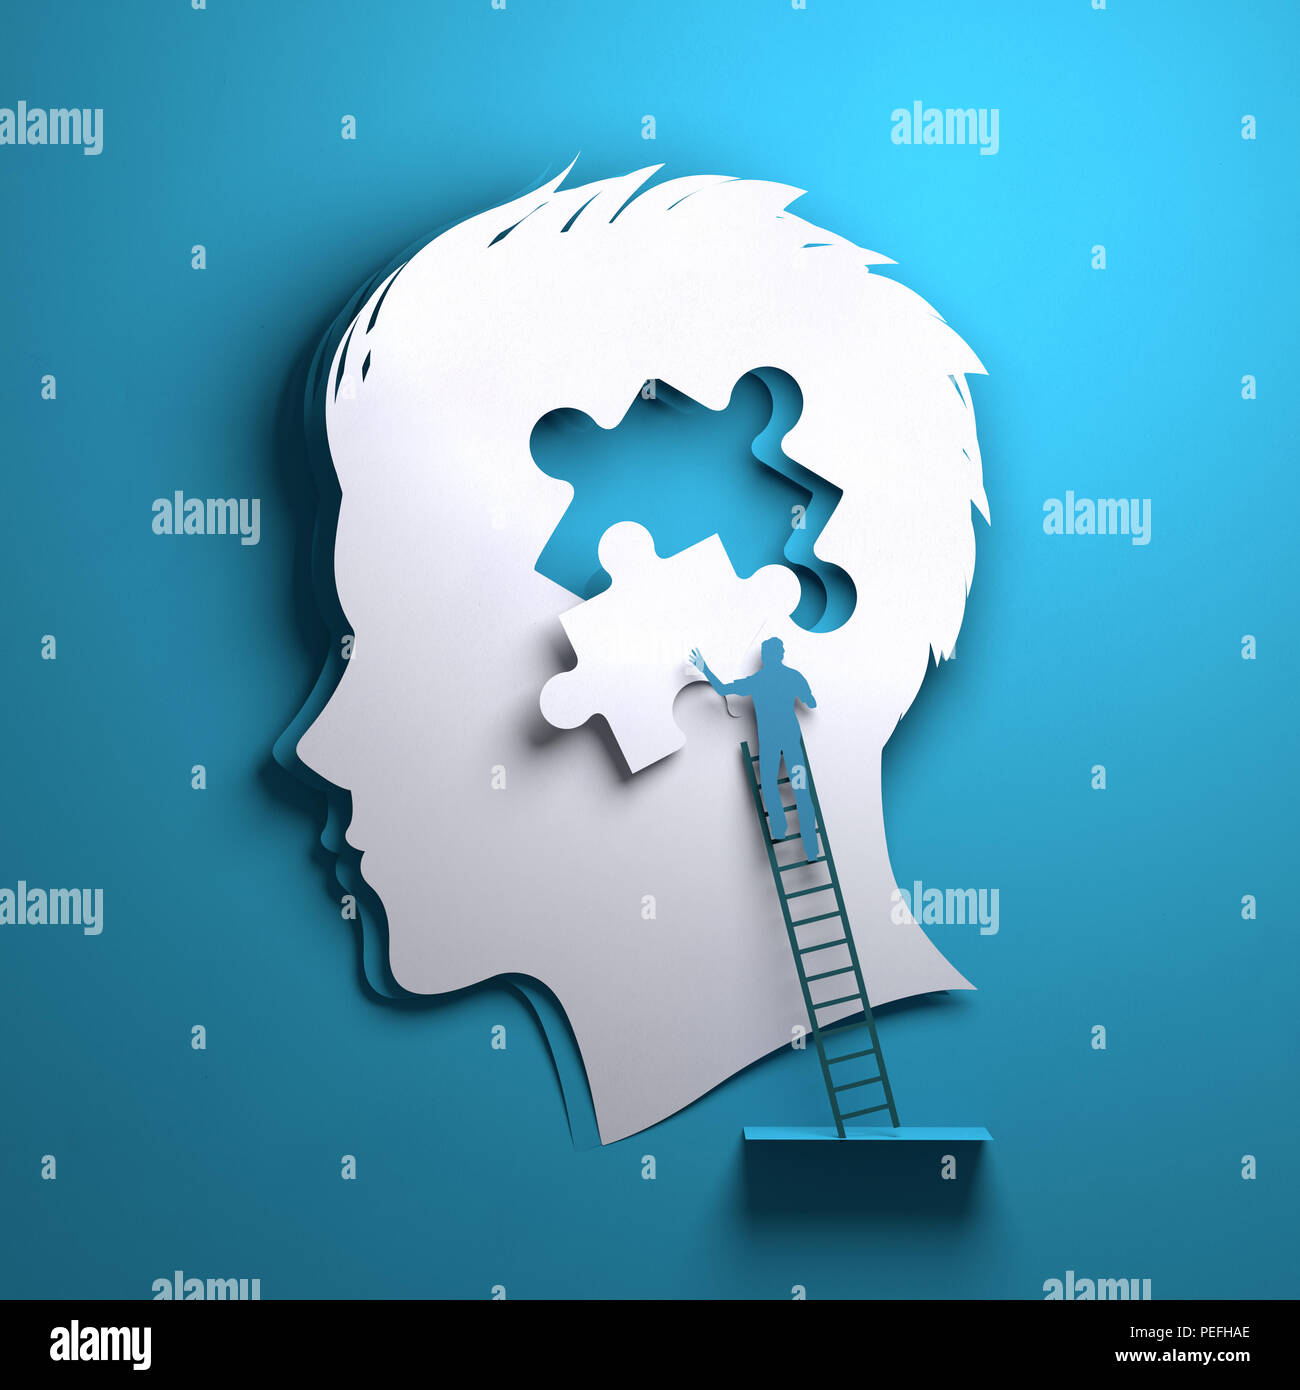 Folded Paper art origami. A silhouette of a mans head with a person adding a puzzle piece. Conceptual mindfulness 3D illustration. - Stock Image